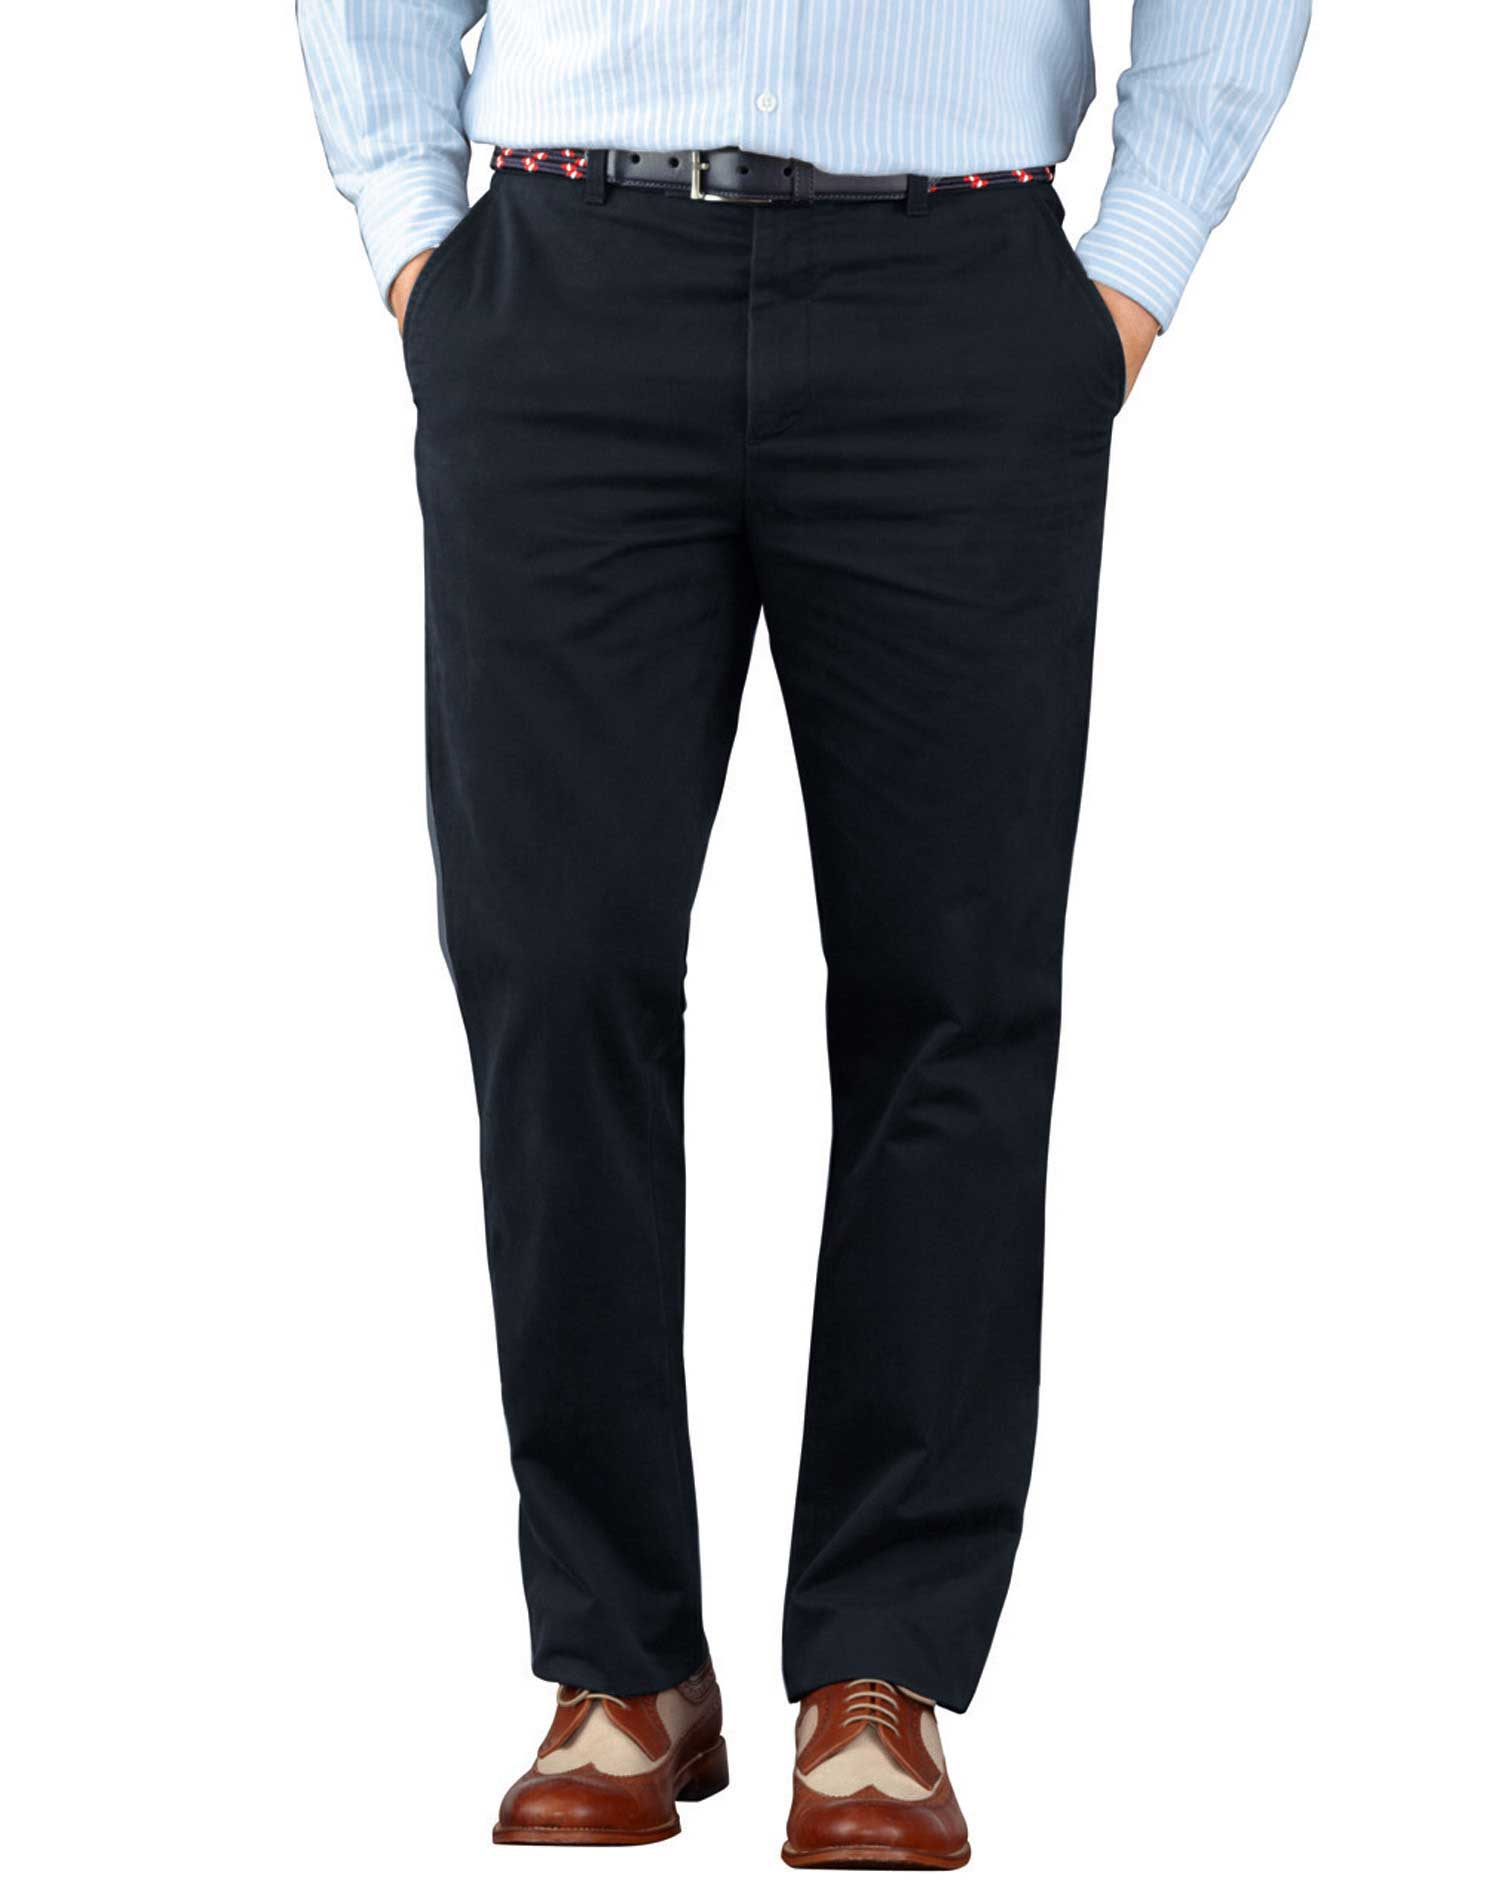 Navy Slim Fit Flat Front Weekend Cotton Chino Trousers Size W38 L38 by Charles Tyrwhitt